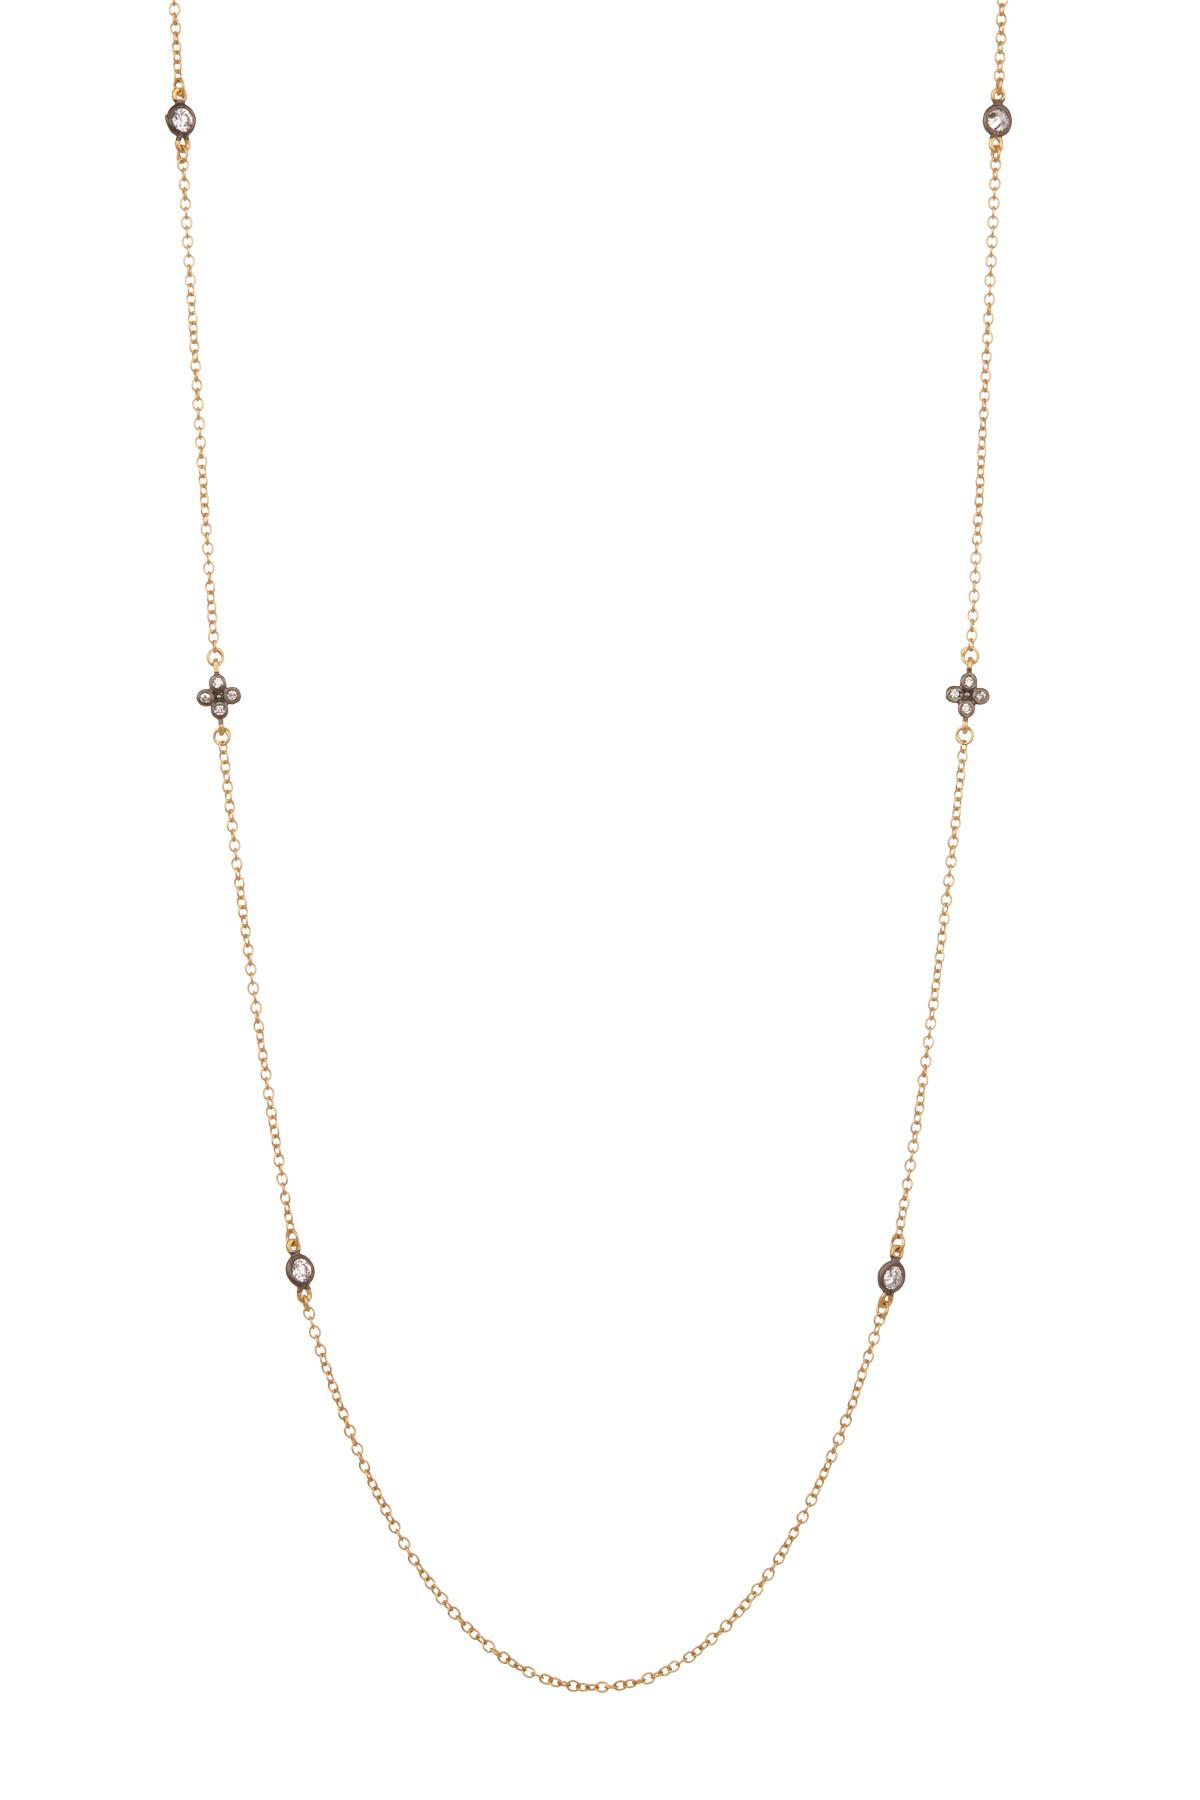 Freida Rothman Double-Row Pave Crystal Clover Station Choker Necklace Zj42yGCrw1